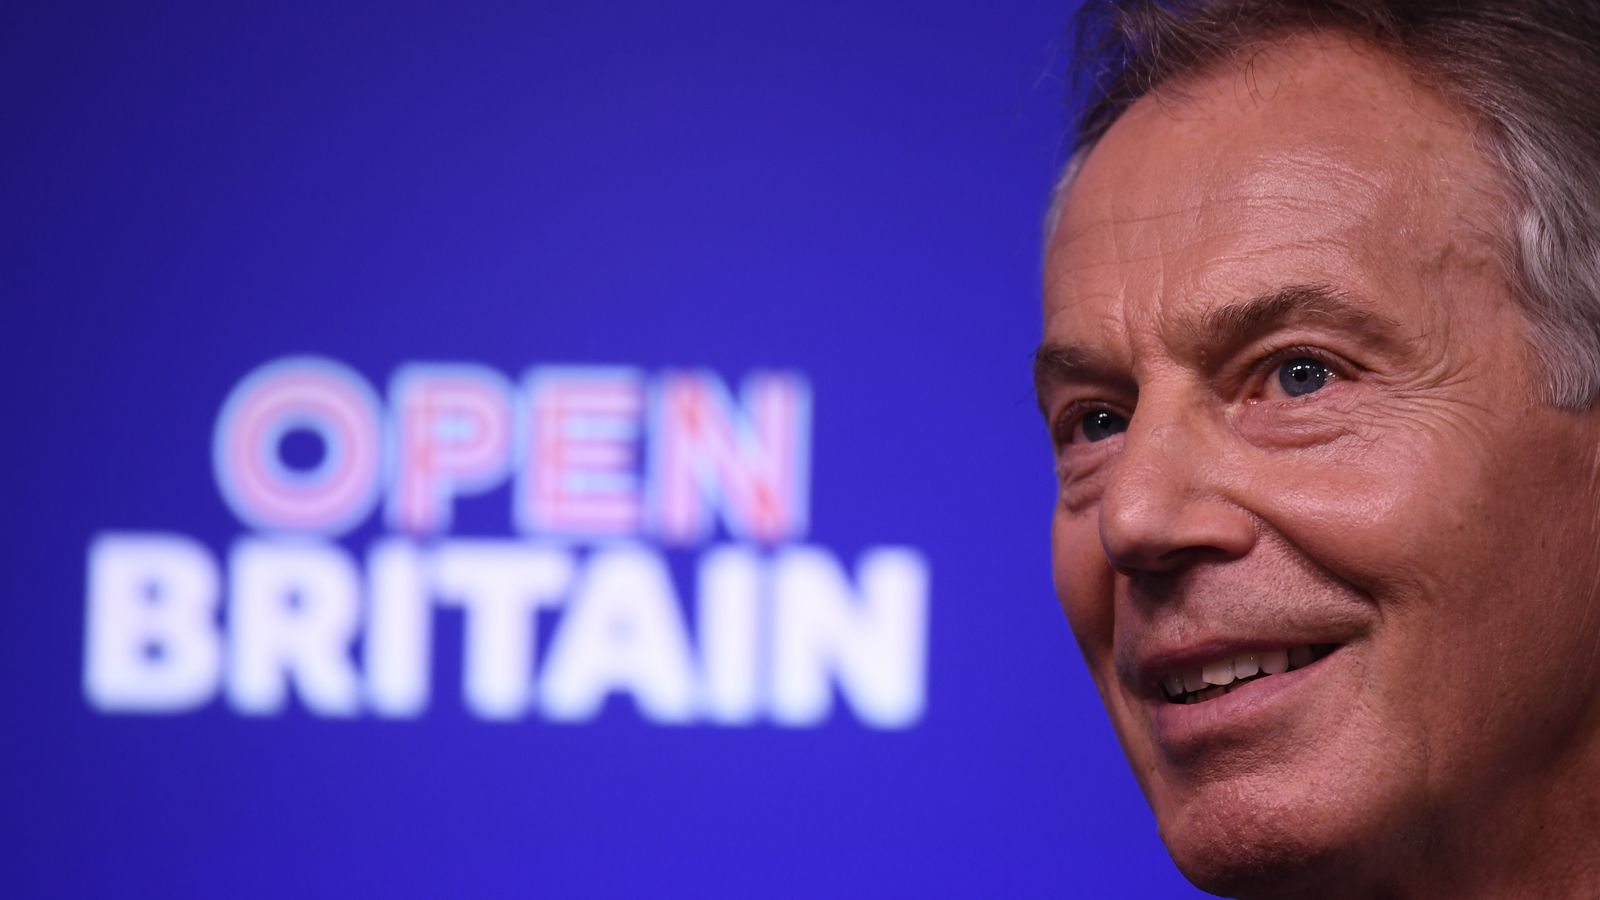 Tony Blair pictured at a pro-EU event in February